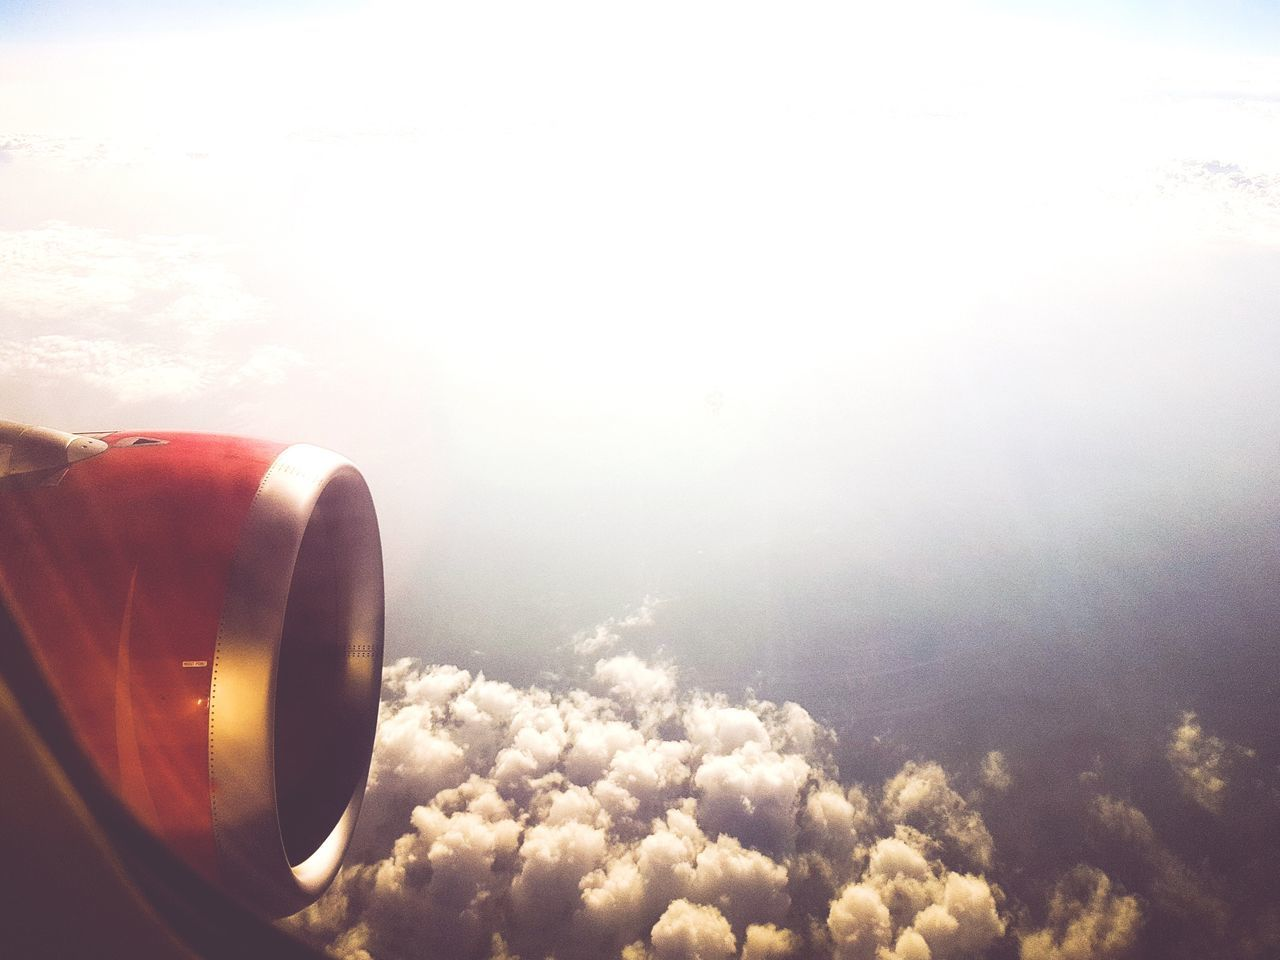 sky, nature, no people, cloud - sky, beauty in nature, day, air vehicle, scenics, airplane, jet engine, outdoors, airplane wing, close-up